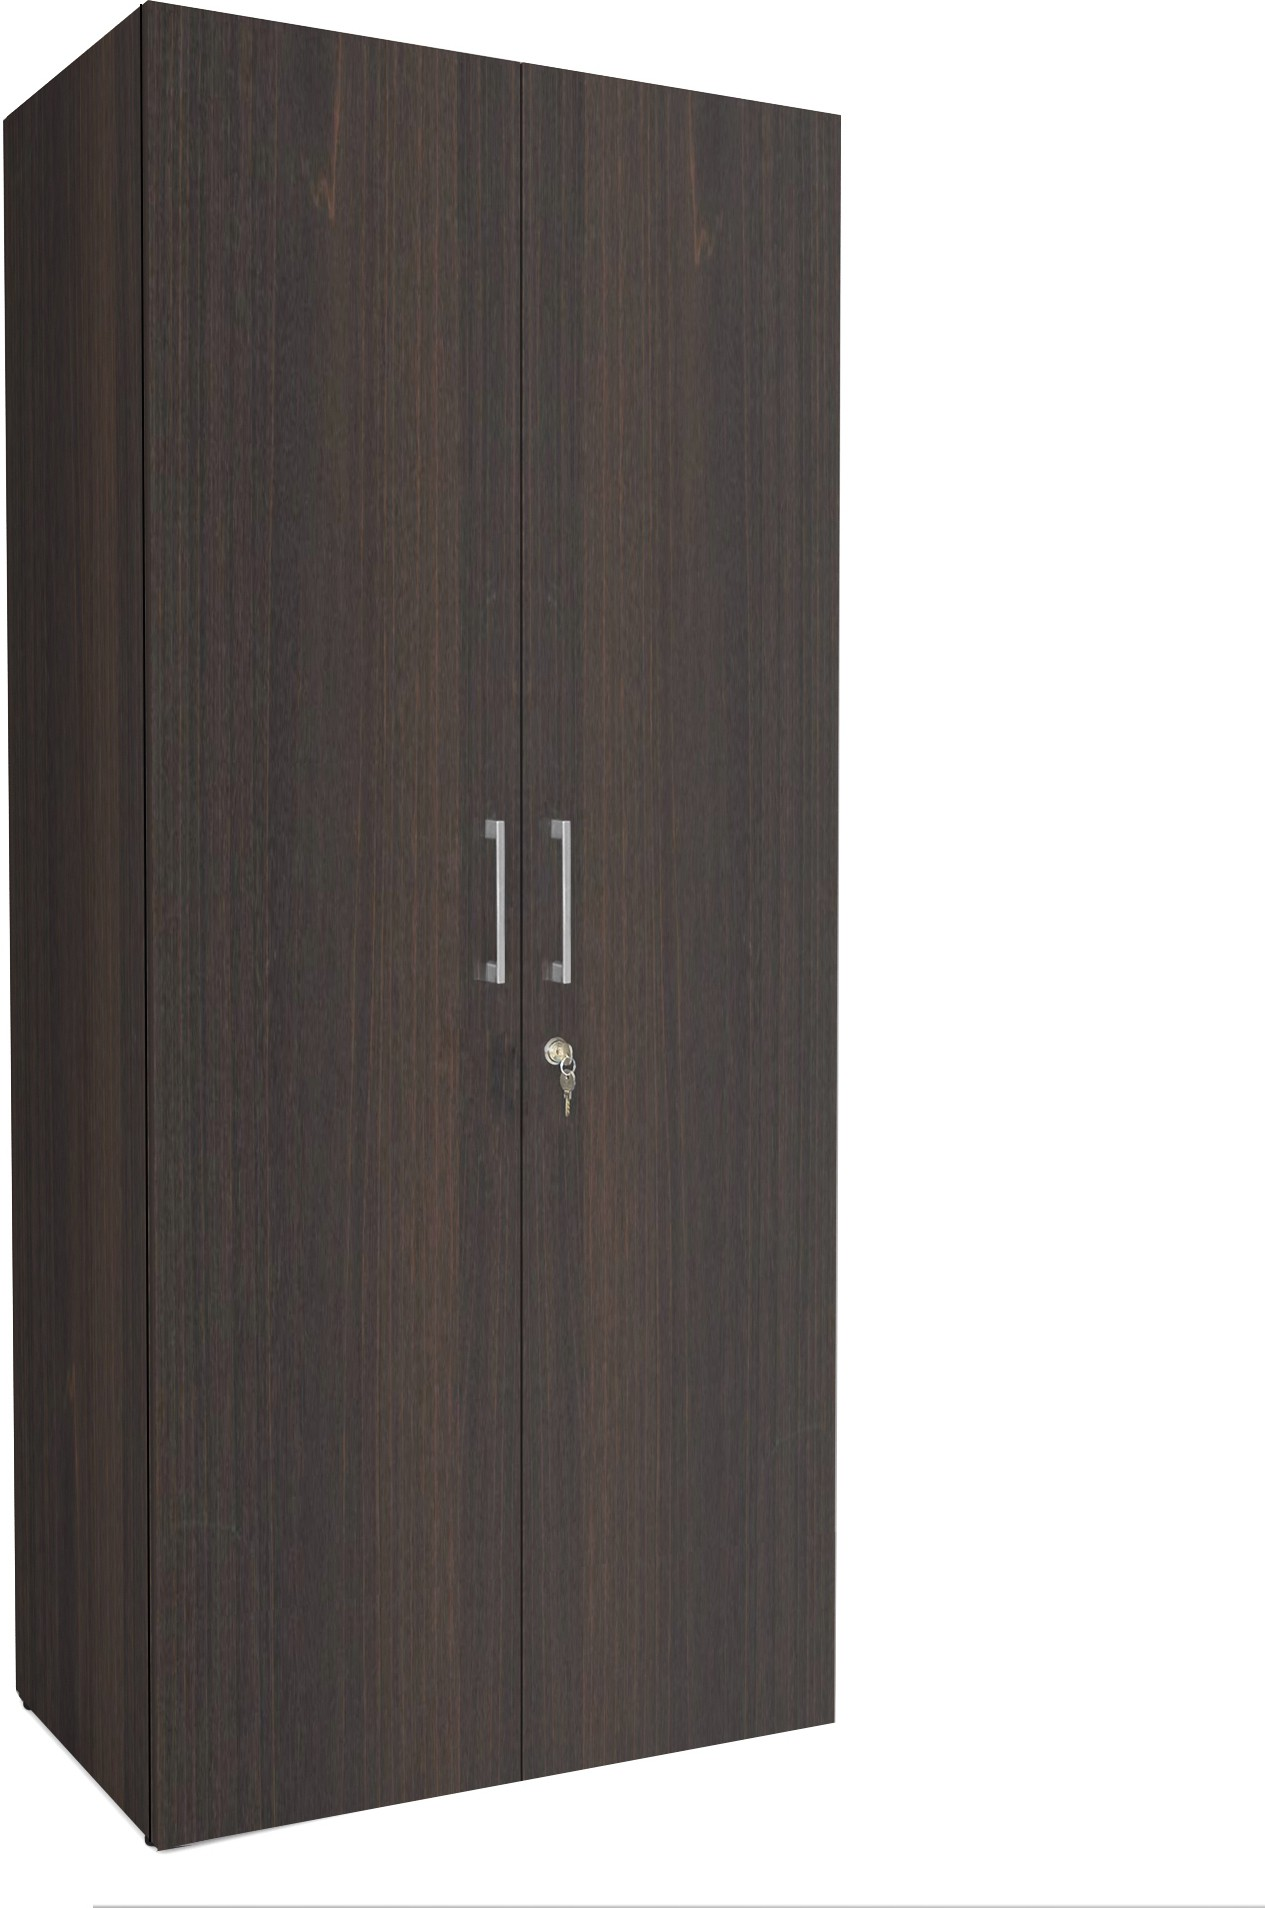 View UNiCOS Maxima Engineered Wood Modular Wardrobe(Finish Color - Midnight oak, 2 Door ) Furniture (UNiCOS)